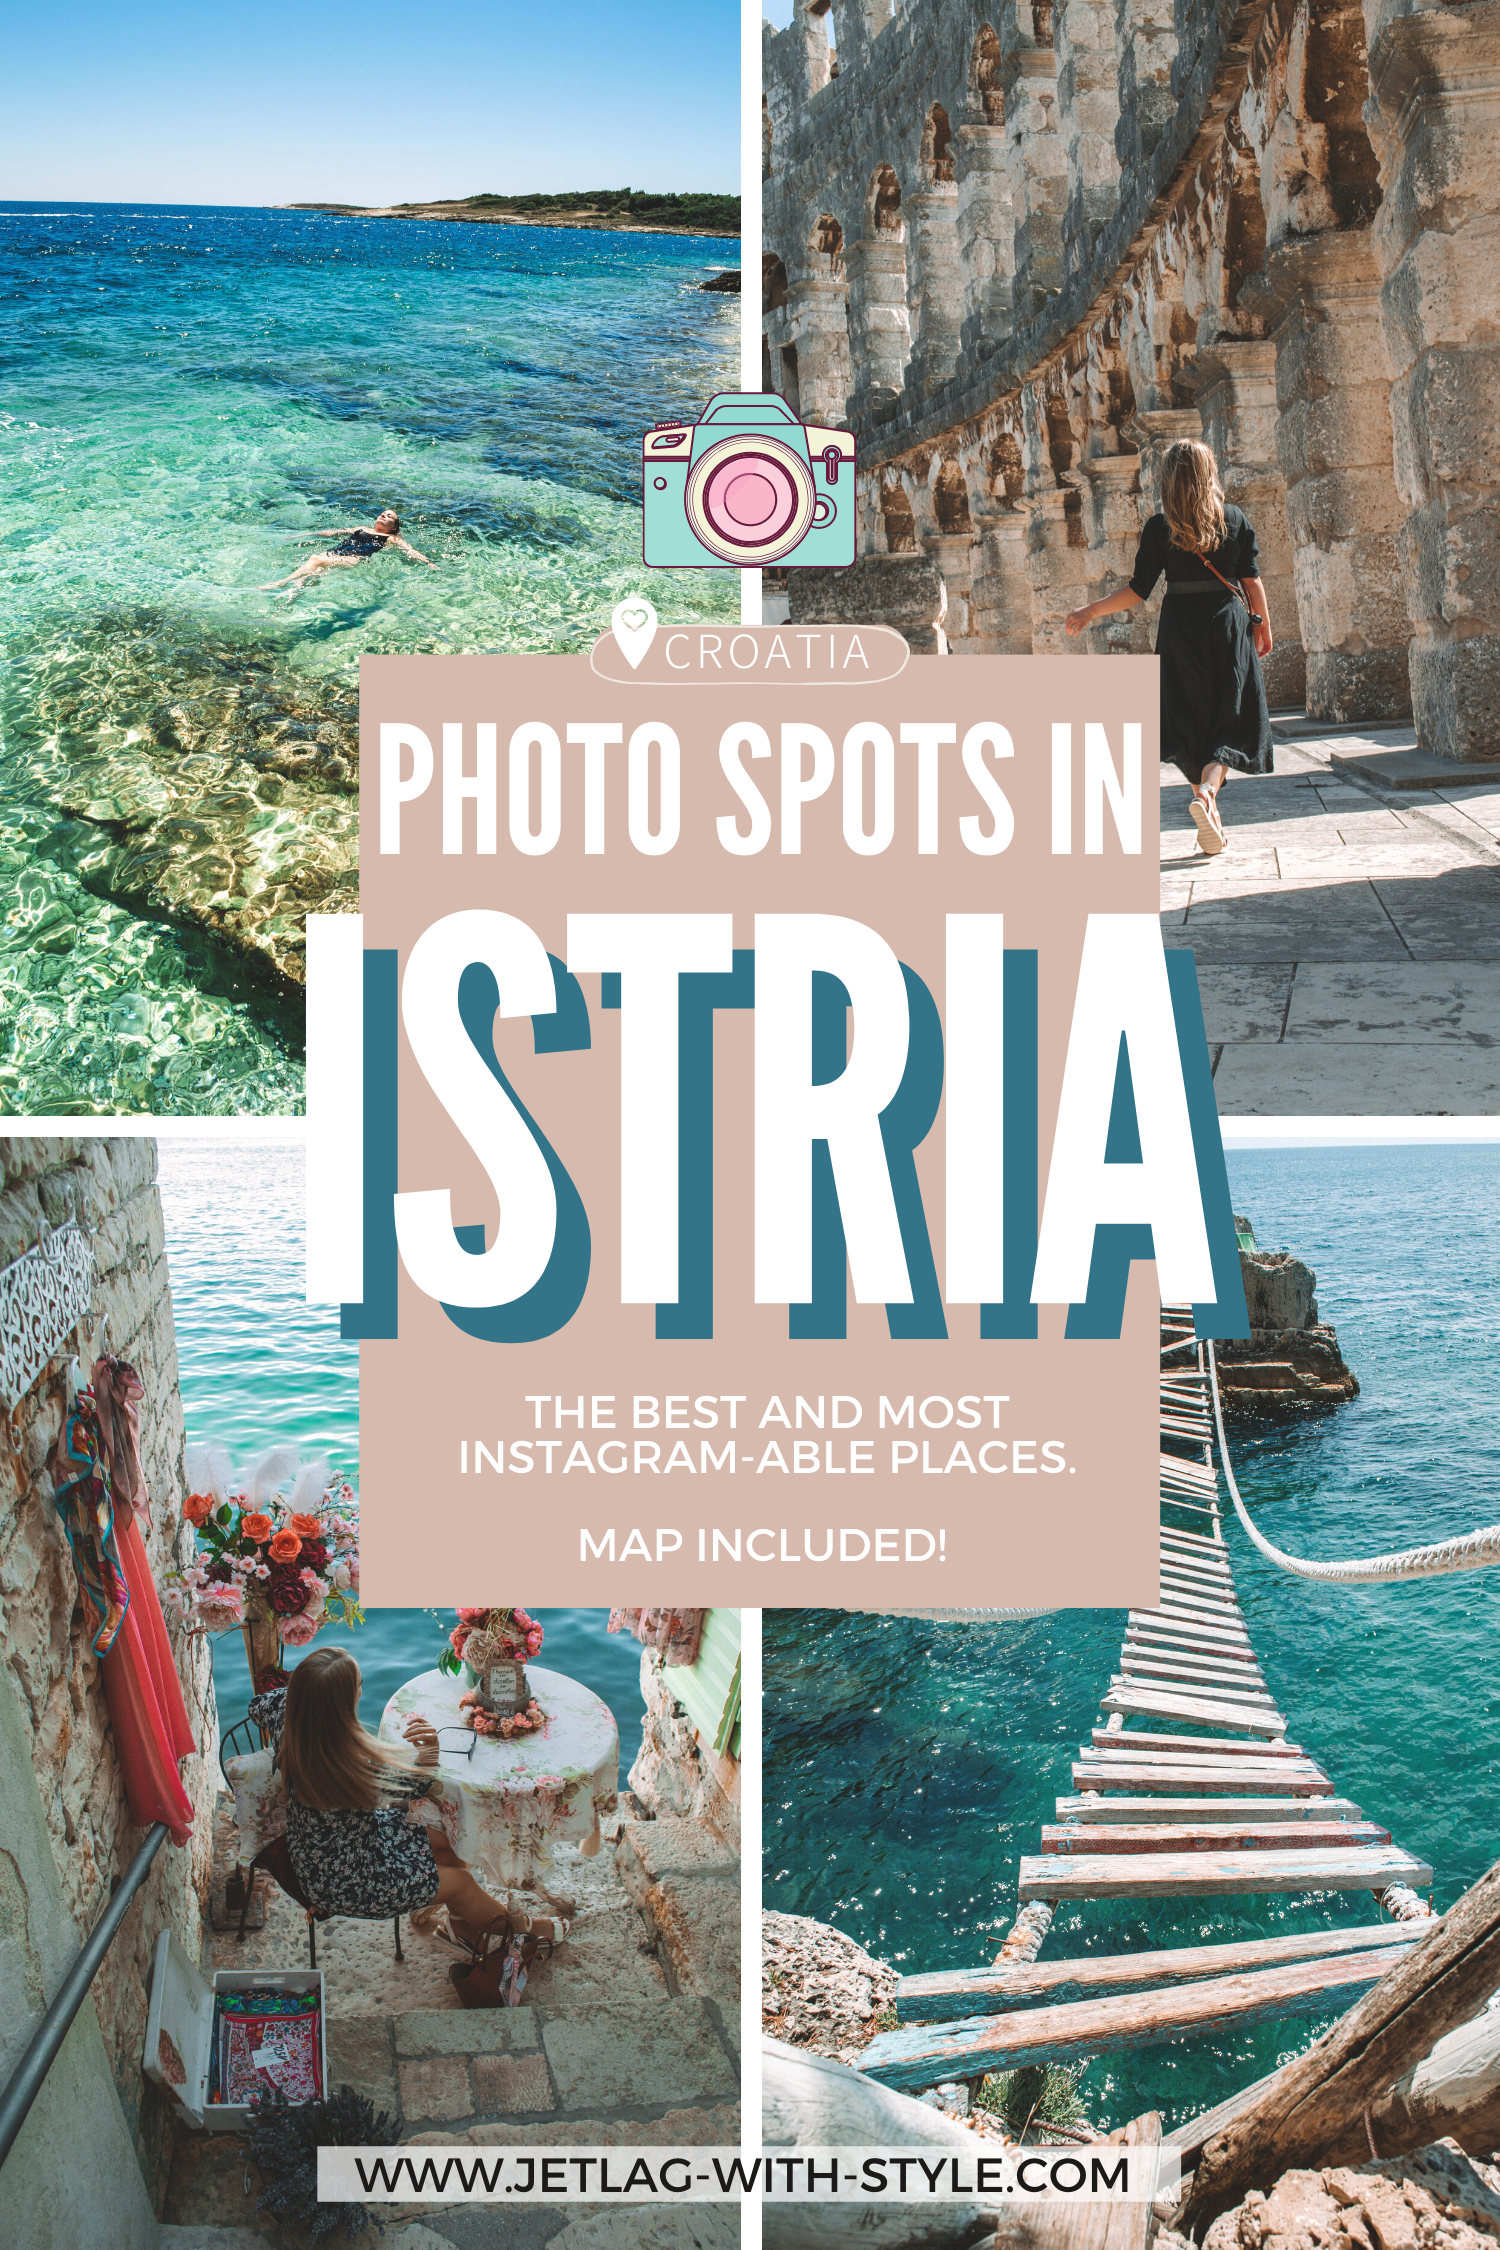 Let's be honest, we all love having great pictures, especially while traveling. Since visual content creation is on such a high and everyone is looking for the great, unique spots, I thought I'd put together some of the best Photo spots in Istria, Croatia. They're so instagrammable, for sure! Enjoy recreating :) Istria / Istria Croatia / Instagram Travel / Photo Travel / Instagrammable places / photography spots /where to take pictures in Istria / Istrien / Roadtrip / Fotospots / Photo Locations